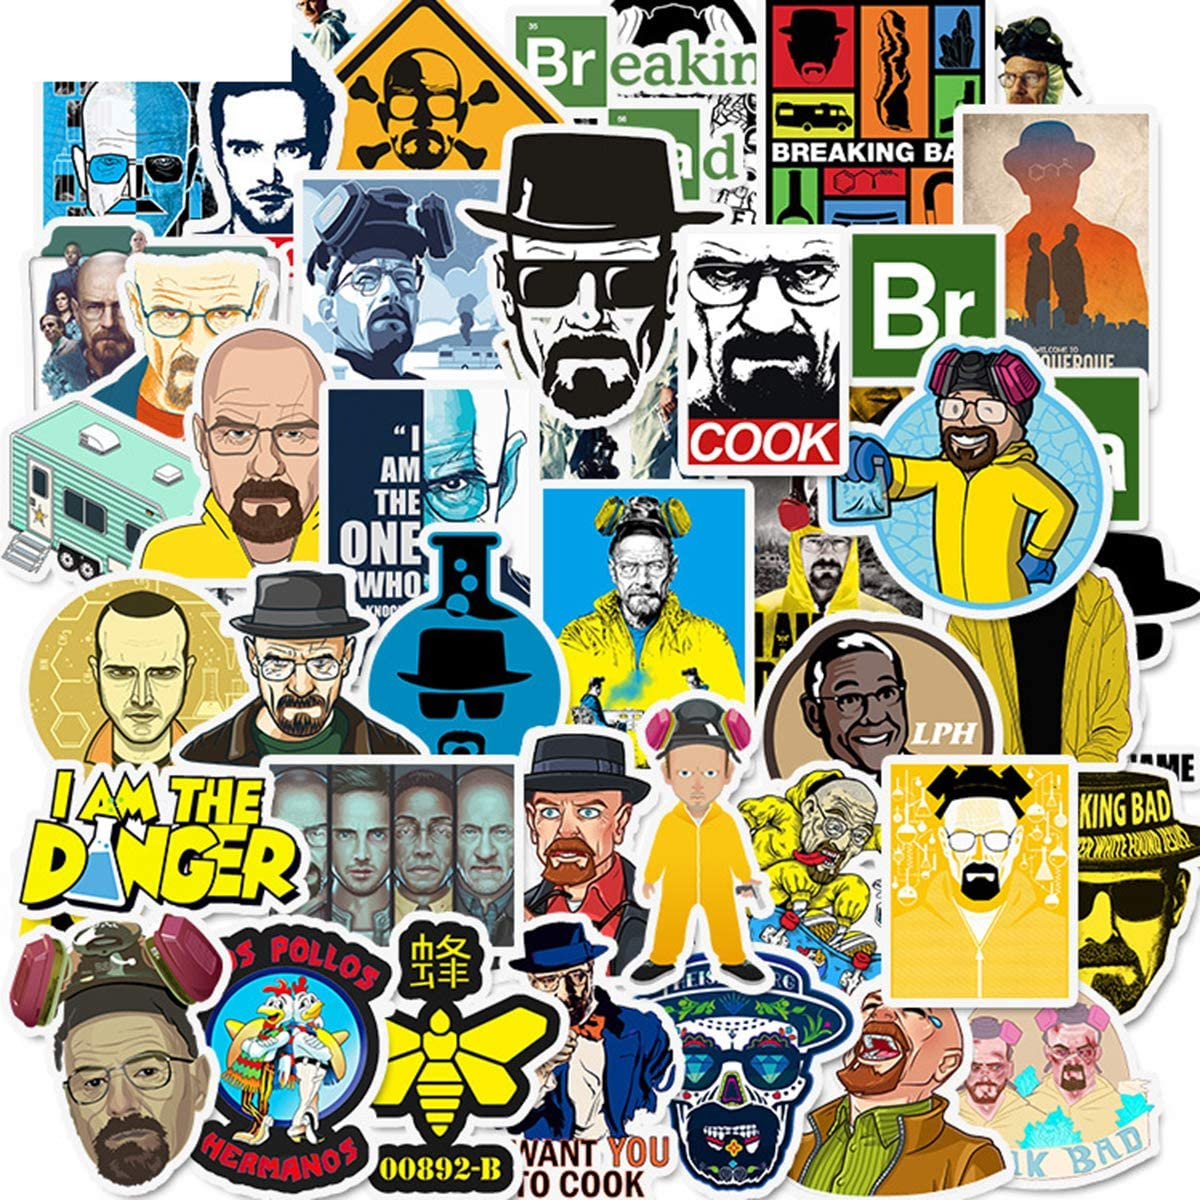 Breaking Bad TV Show Merchandise Stickers Pack of 50 Stickers-Funny Quote Waterproof Vinyl Stickers for Laptop Water Bottles Phone Notebook Computers Guitar Bike Helmet Car-Interesting Gift